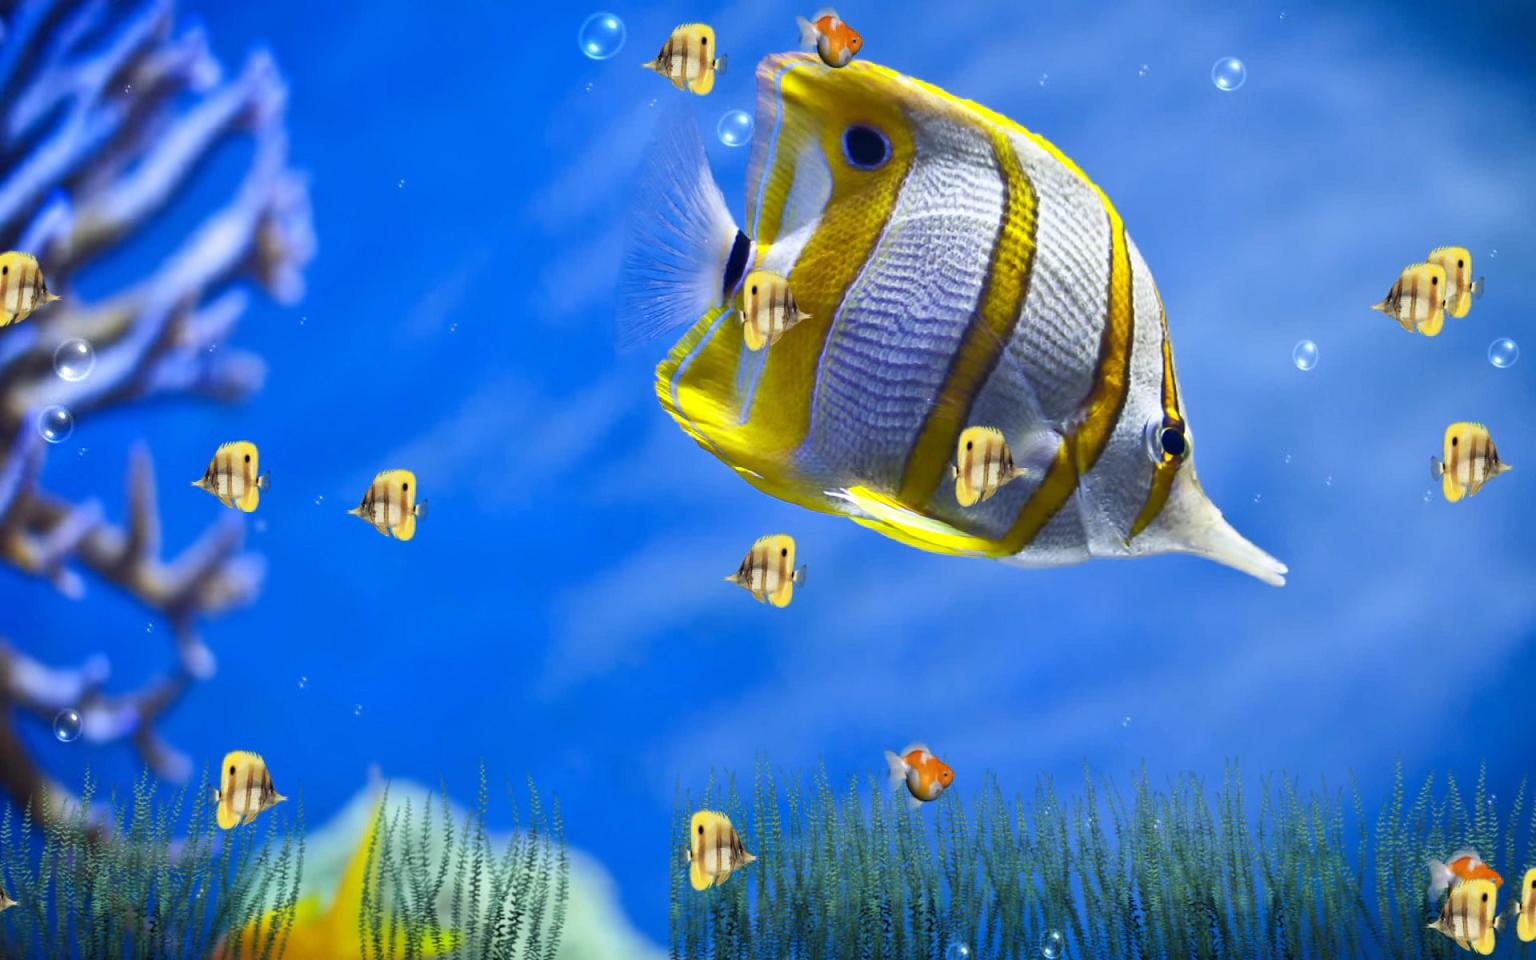 Aquarium Live Wallpaper For Computer